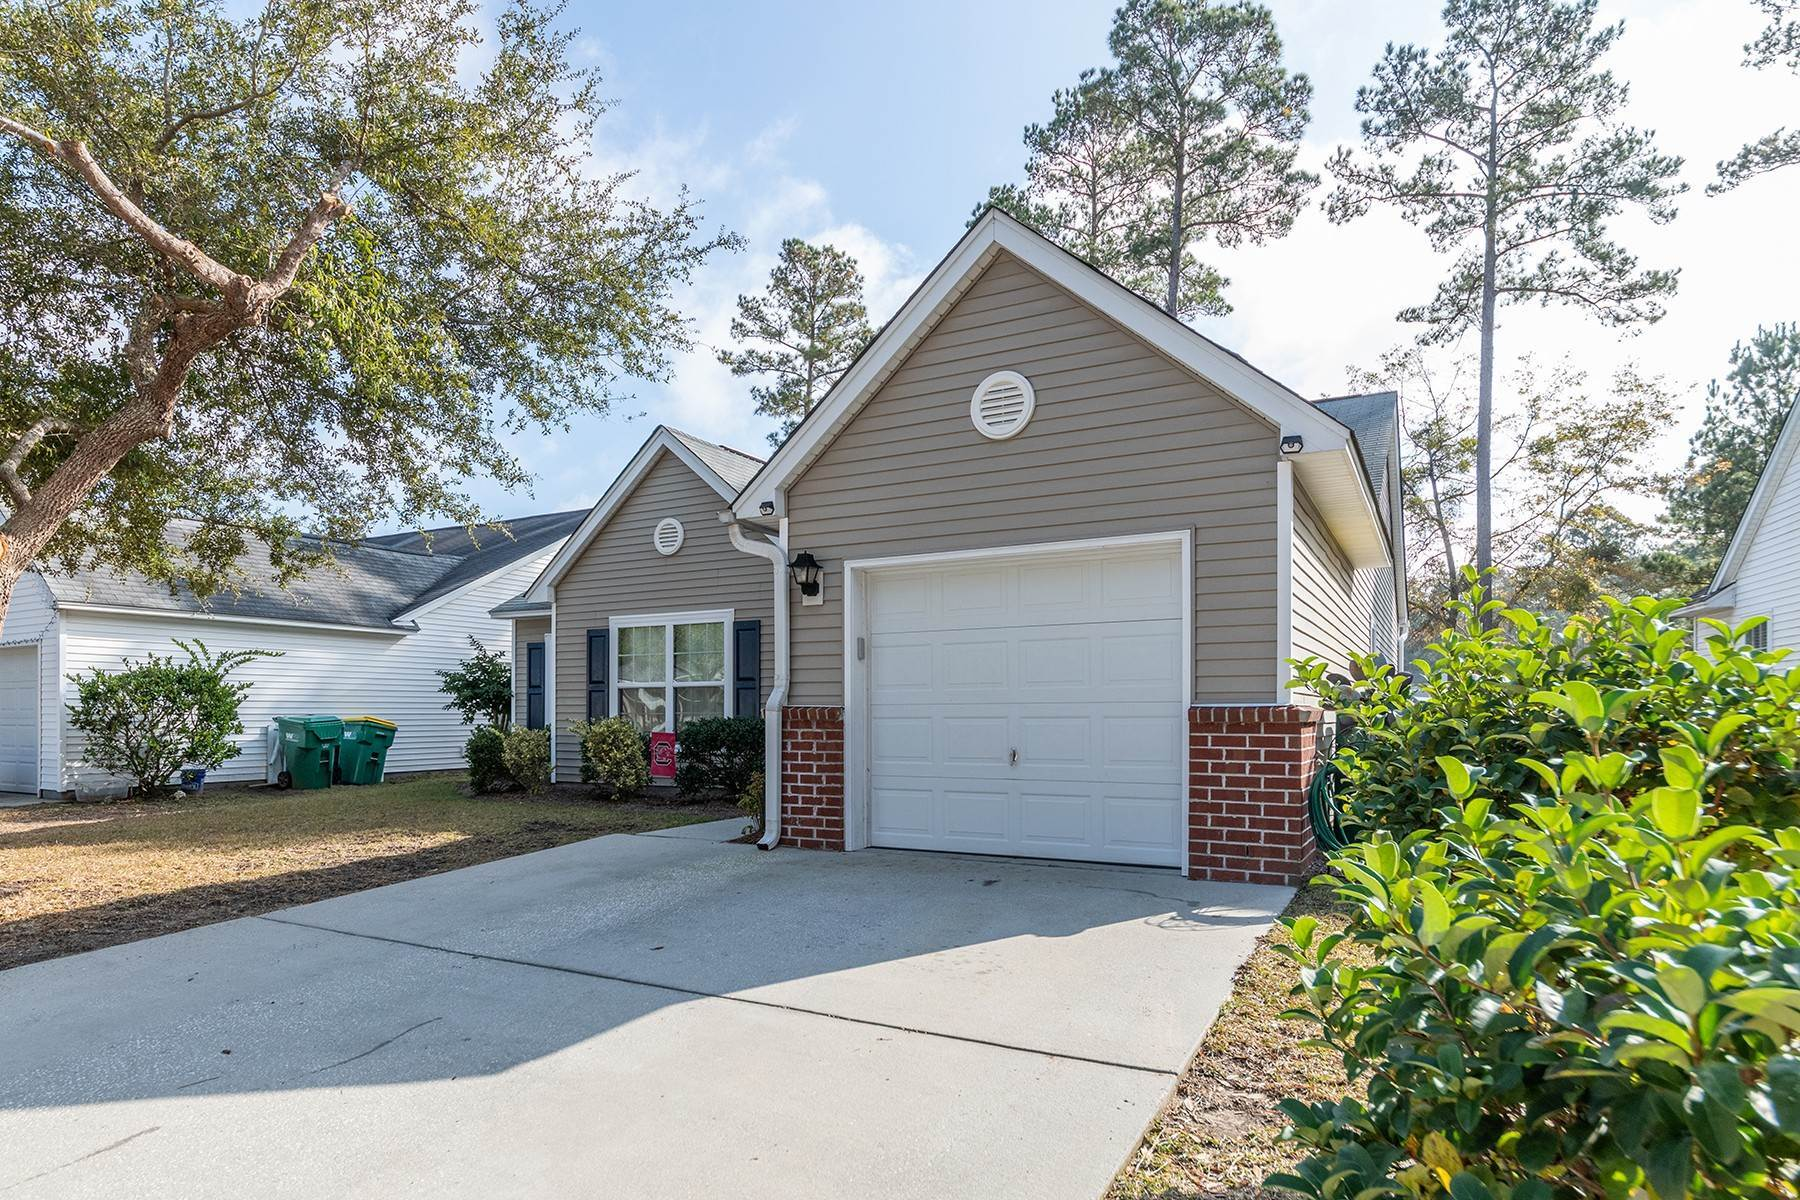 Single Family Homes for Sale at 17 Spruce Drive Bluffton, South Carolina 29910 United States